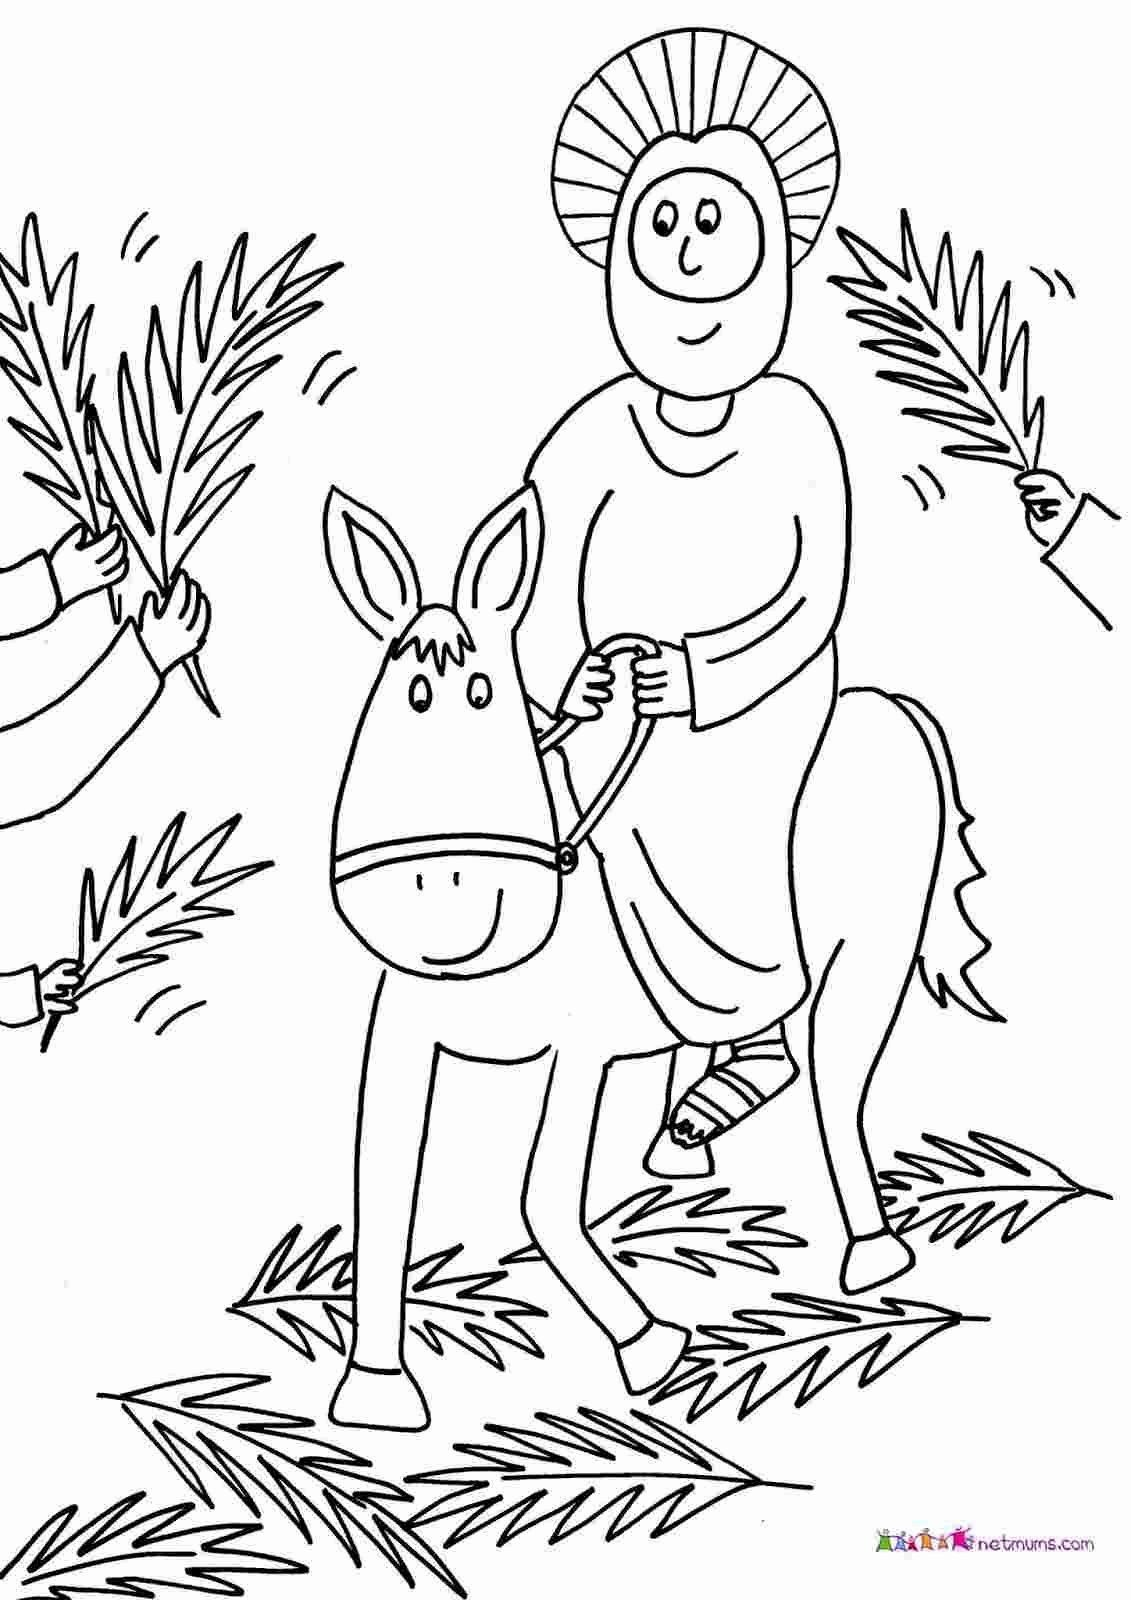 Palm Sunday Coloring Page Awesome Coloring Pages Palm Sunday Easter Palm Sunday Crafts Pal In 2020 Easter Coloring Book Easter Coloring Sheets Christmas Coloring Pages